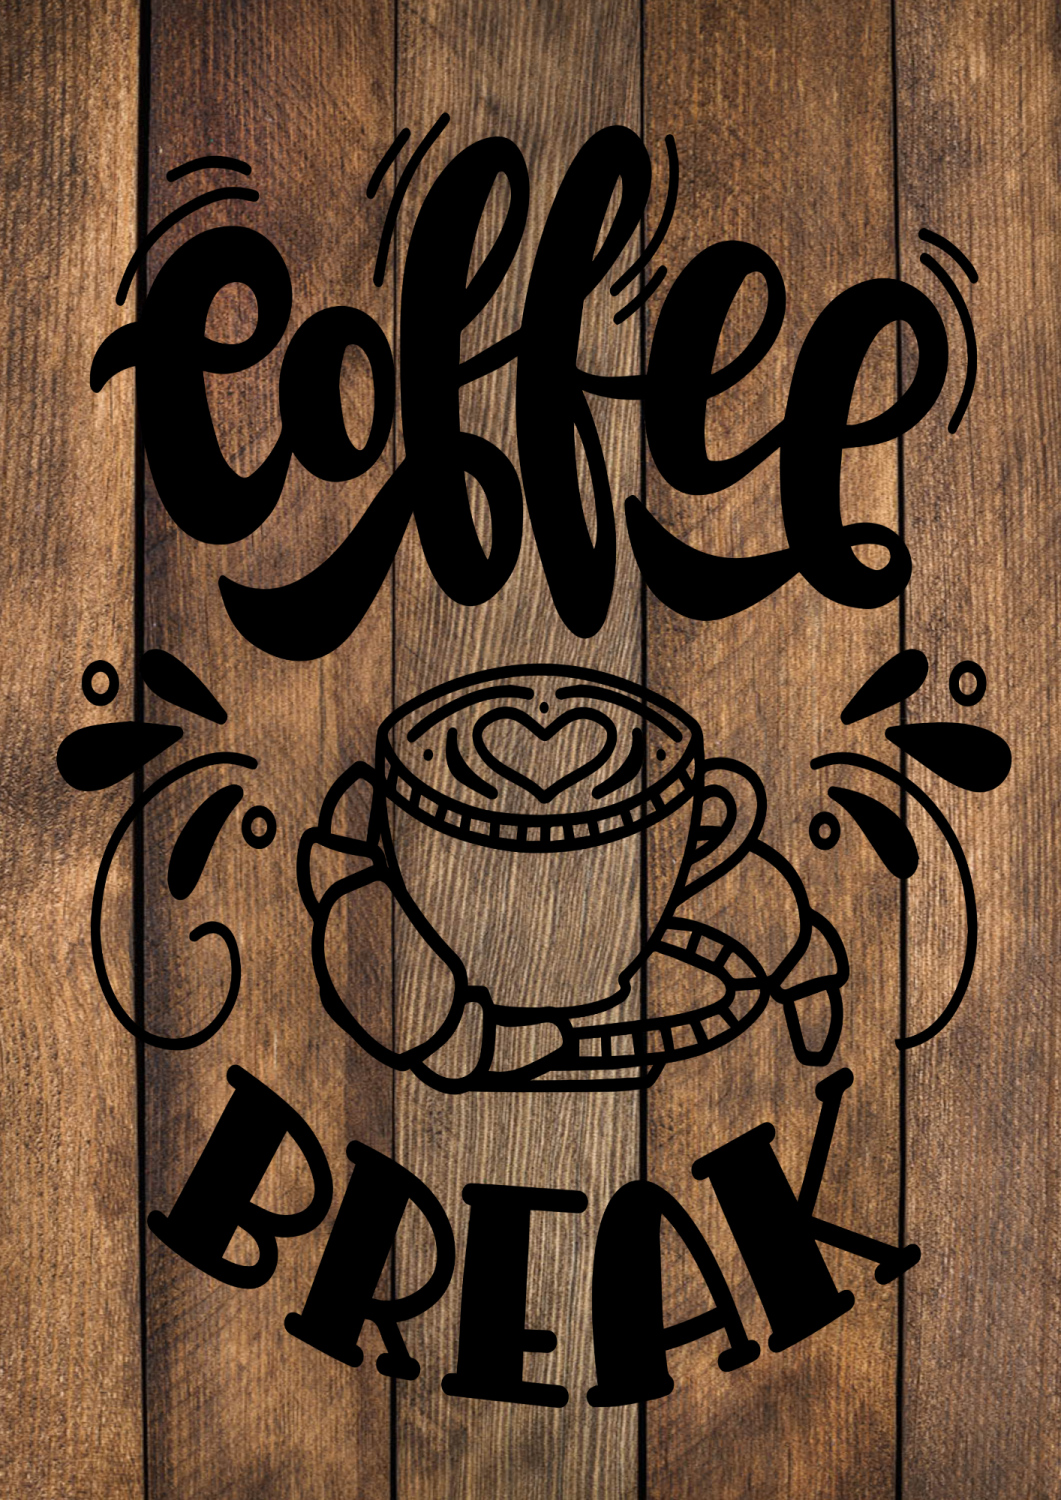 ALL YOU NEED IS COFFEE WOOD EFFECT METAL SIGN 29CM'S X 20CM'S